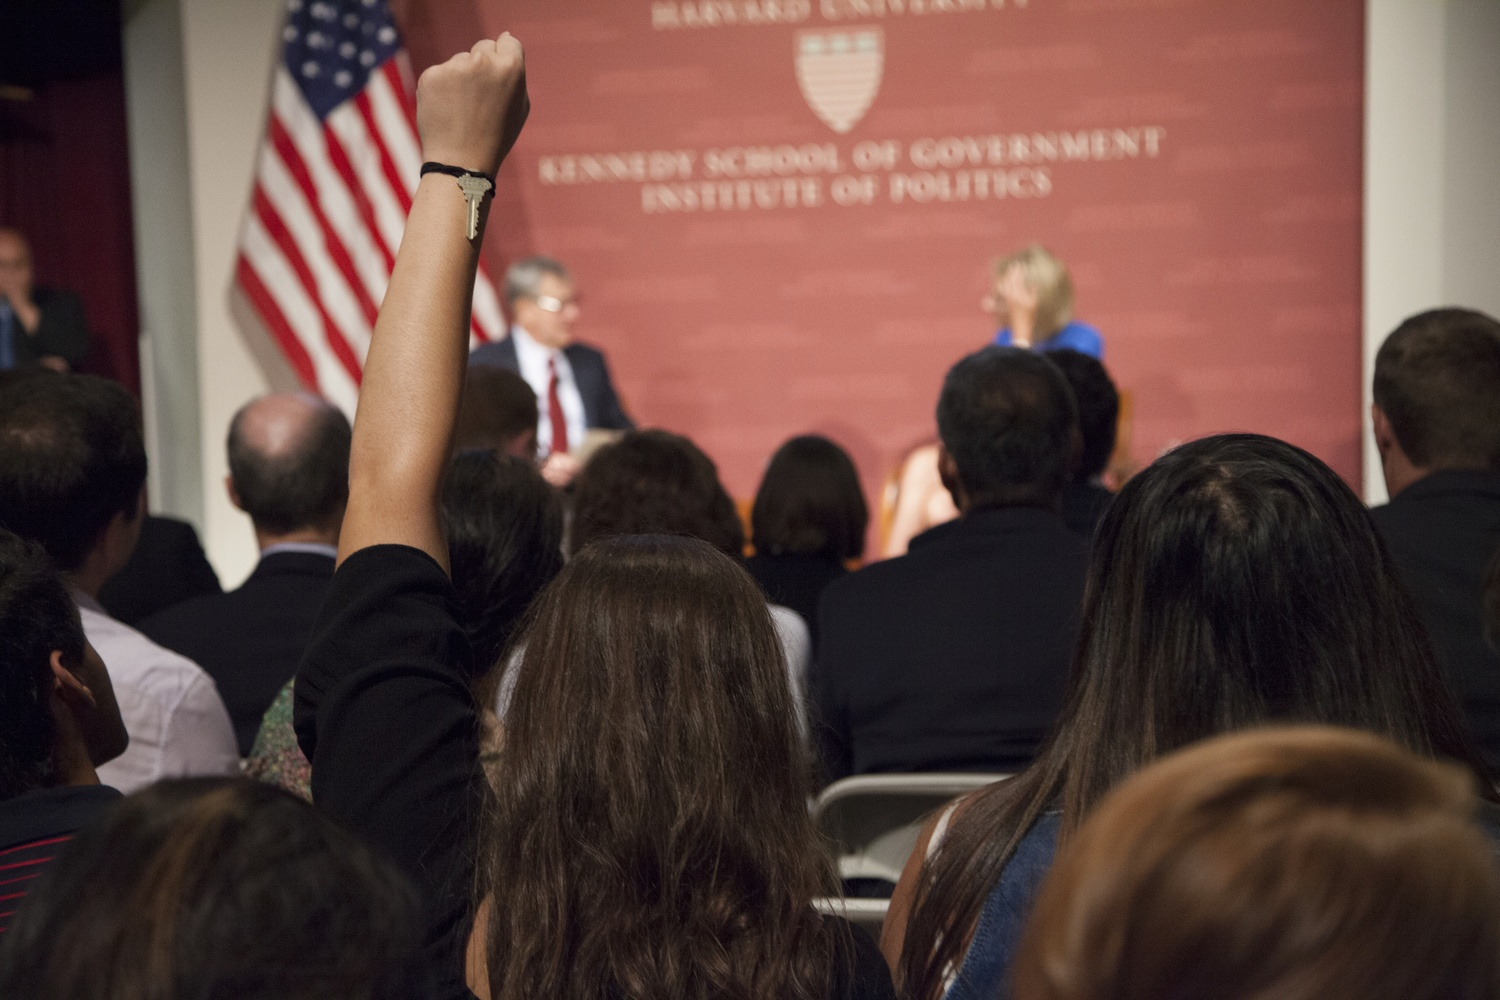 A student raises her fist in the air in an act of silent protest against Secretary of Education Betsy DeVos Thursday evening. Hundreds of students and locals turned out to protest DeVos' speech at the Harvard Kennedy School.